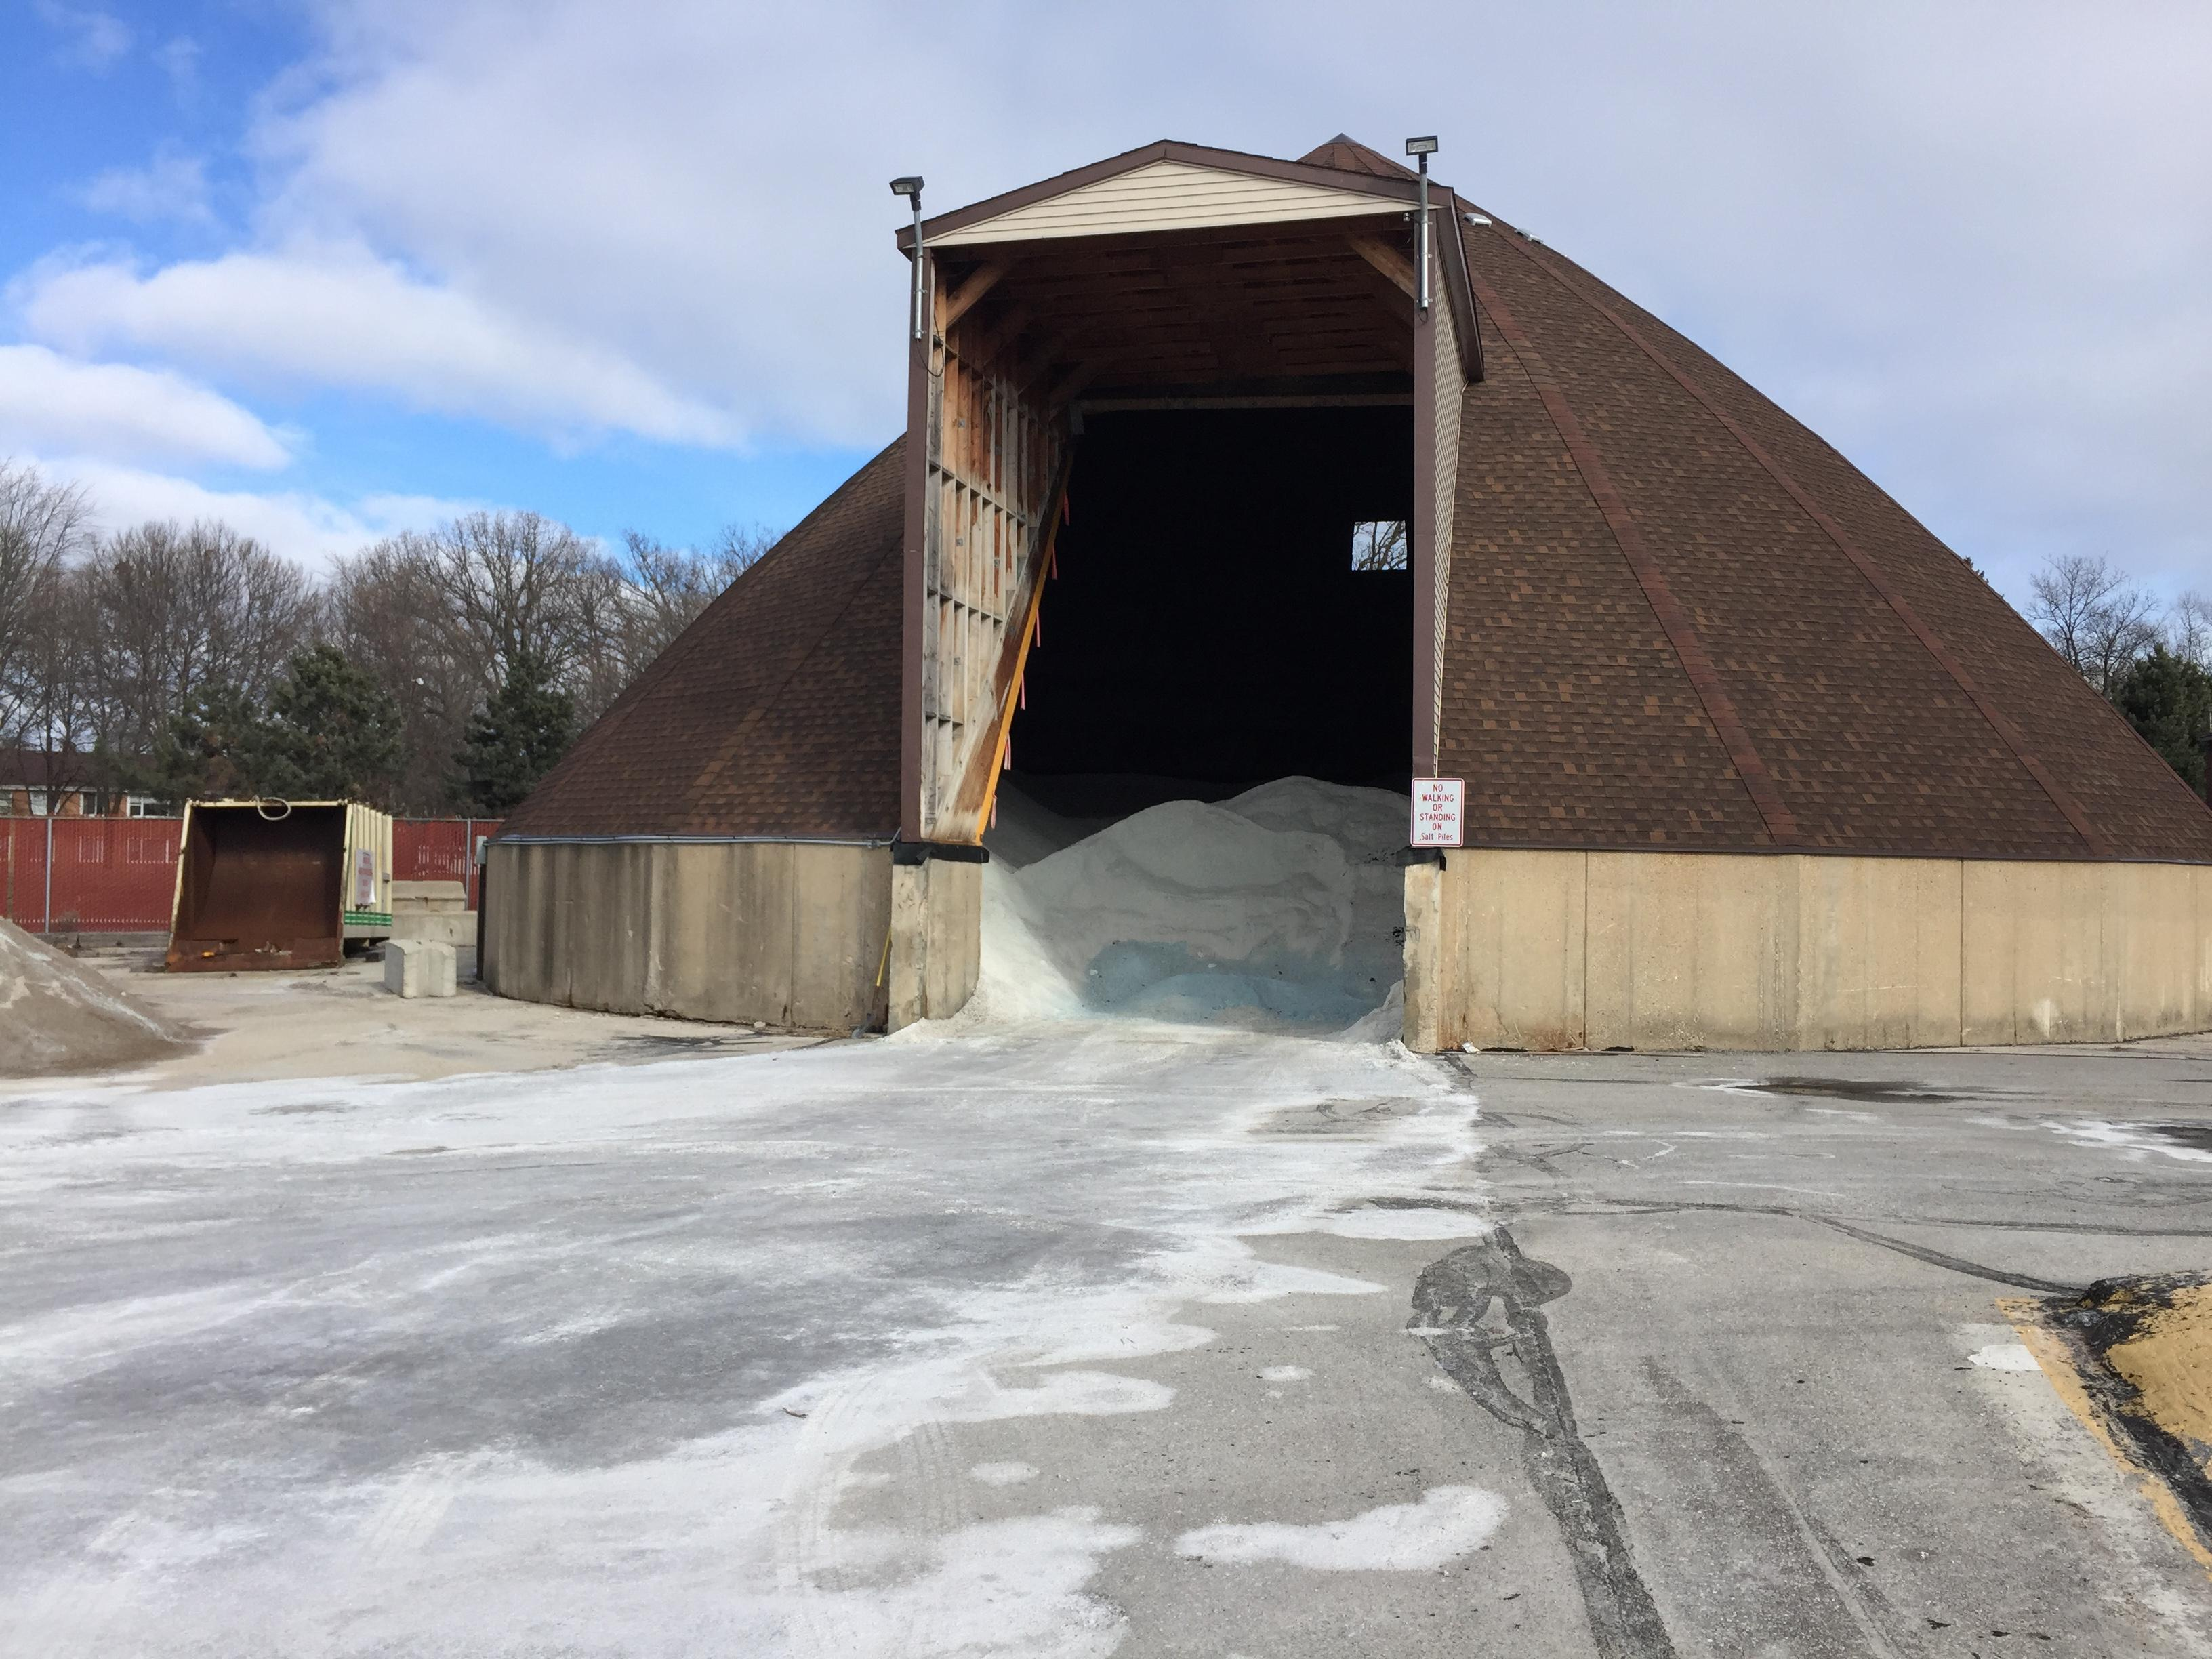 Green Bay Public Works Department salt barn, January 29, 2018 (WLUK/Eric Peterson)